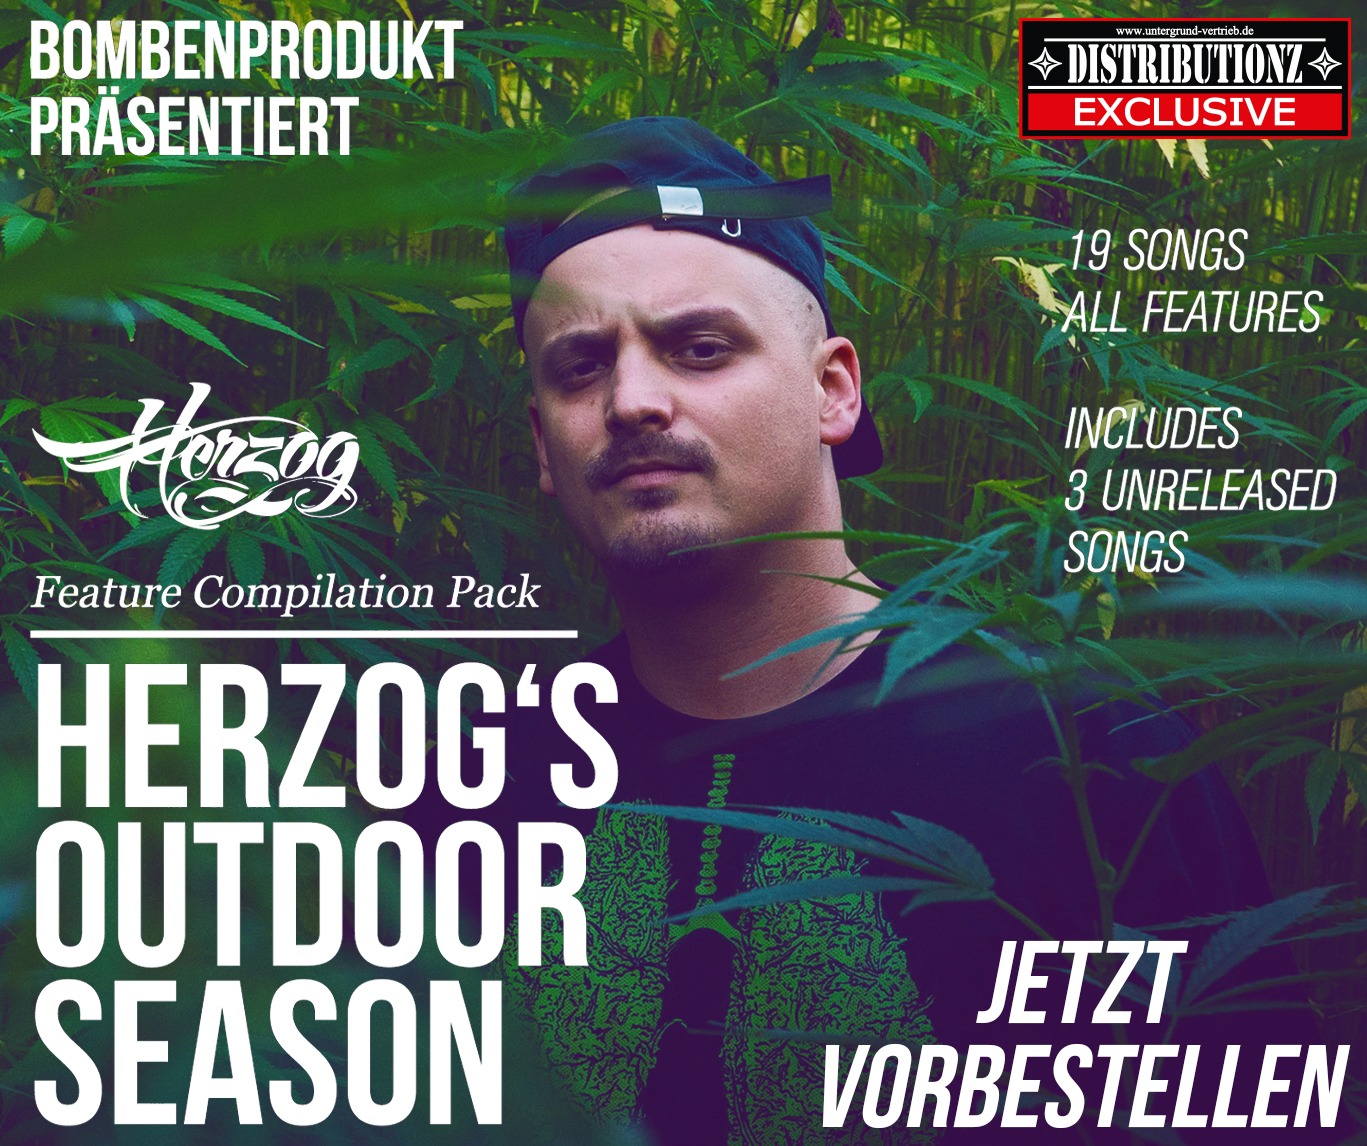 Herzog - Outdoor Season